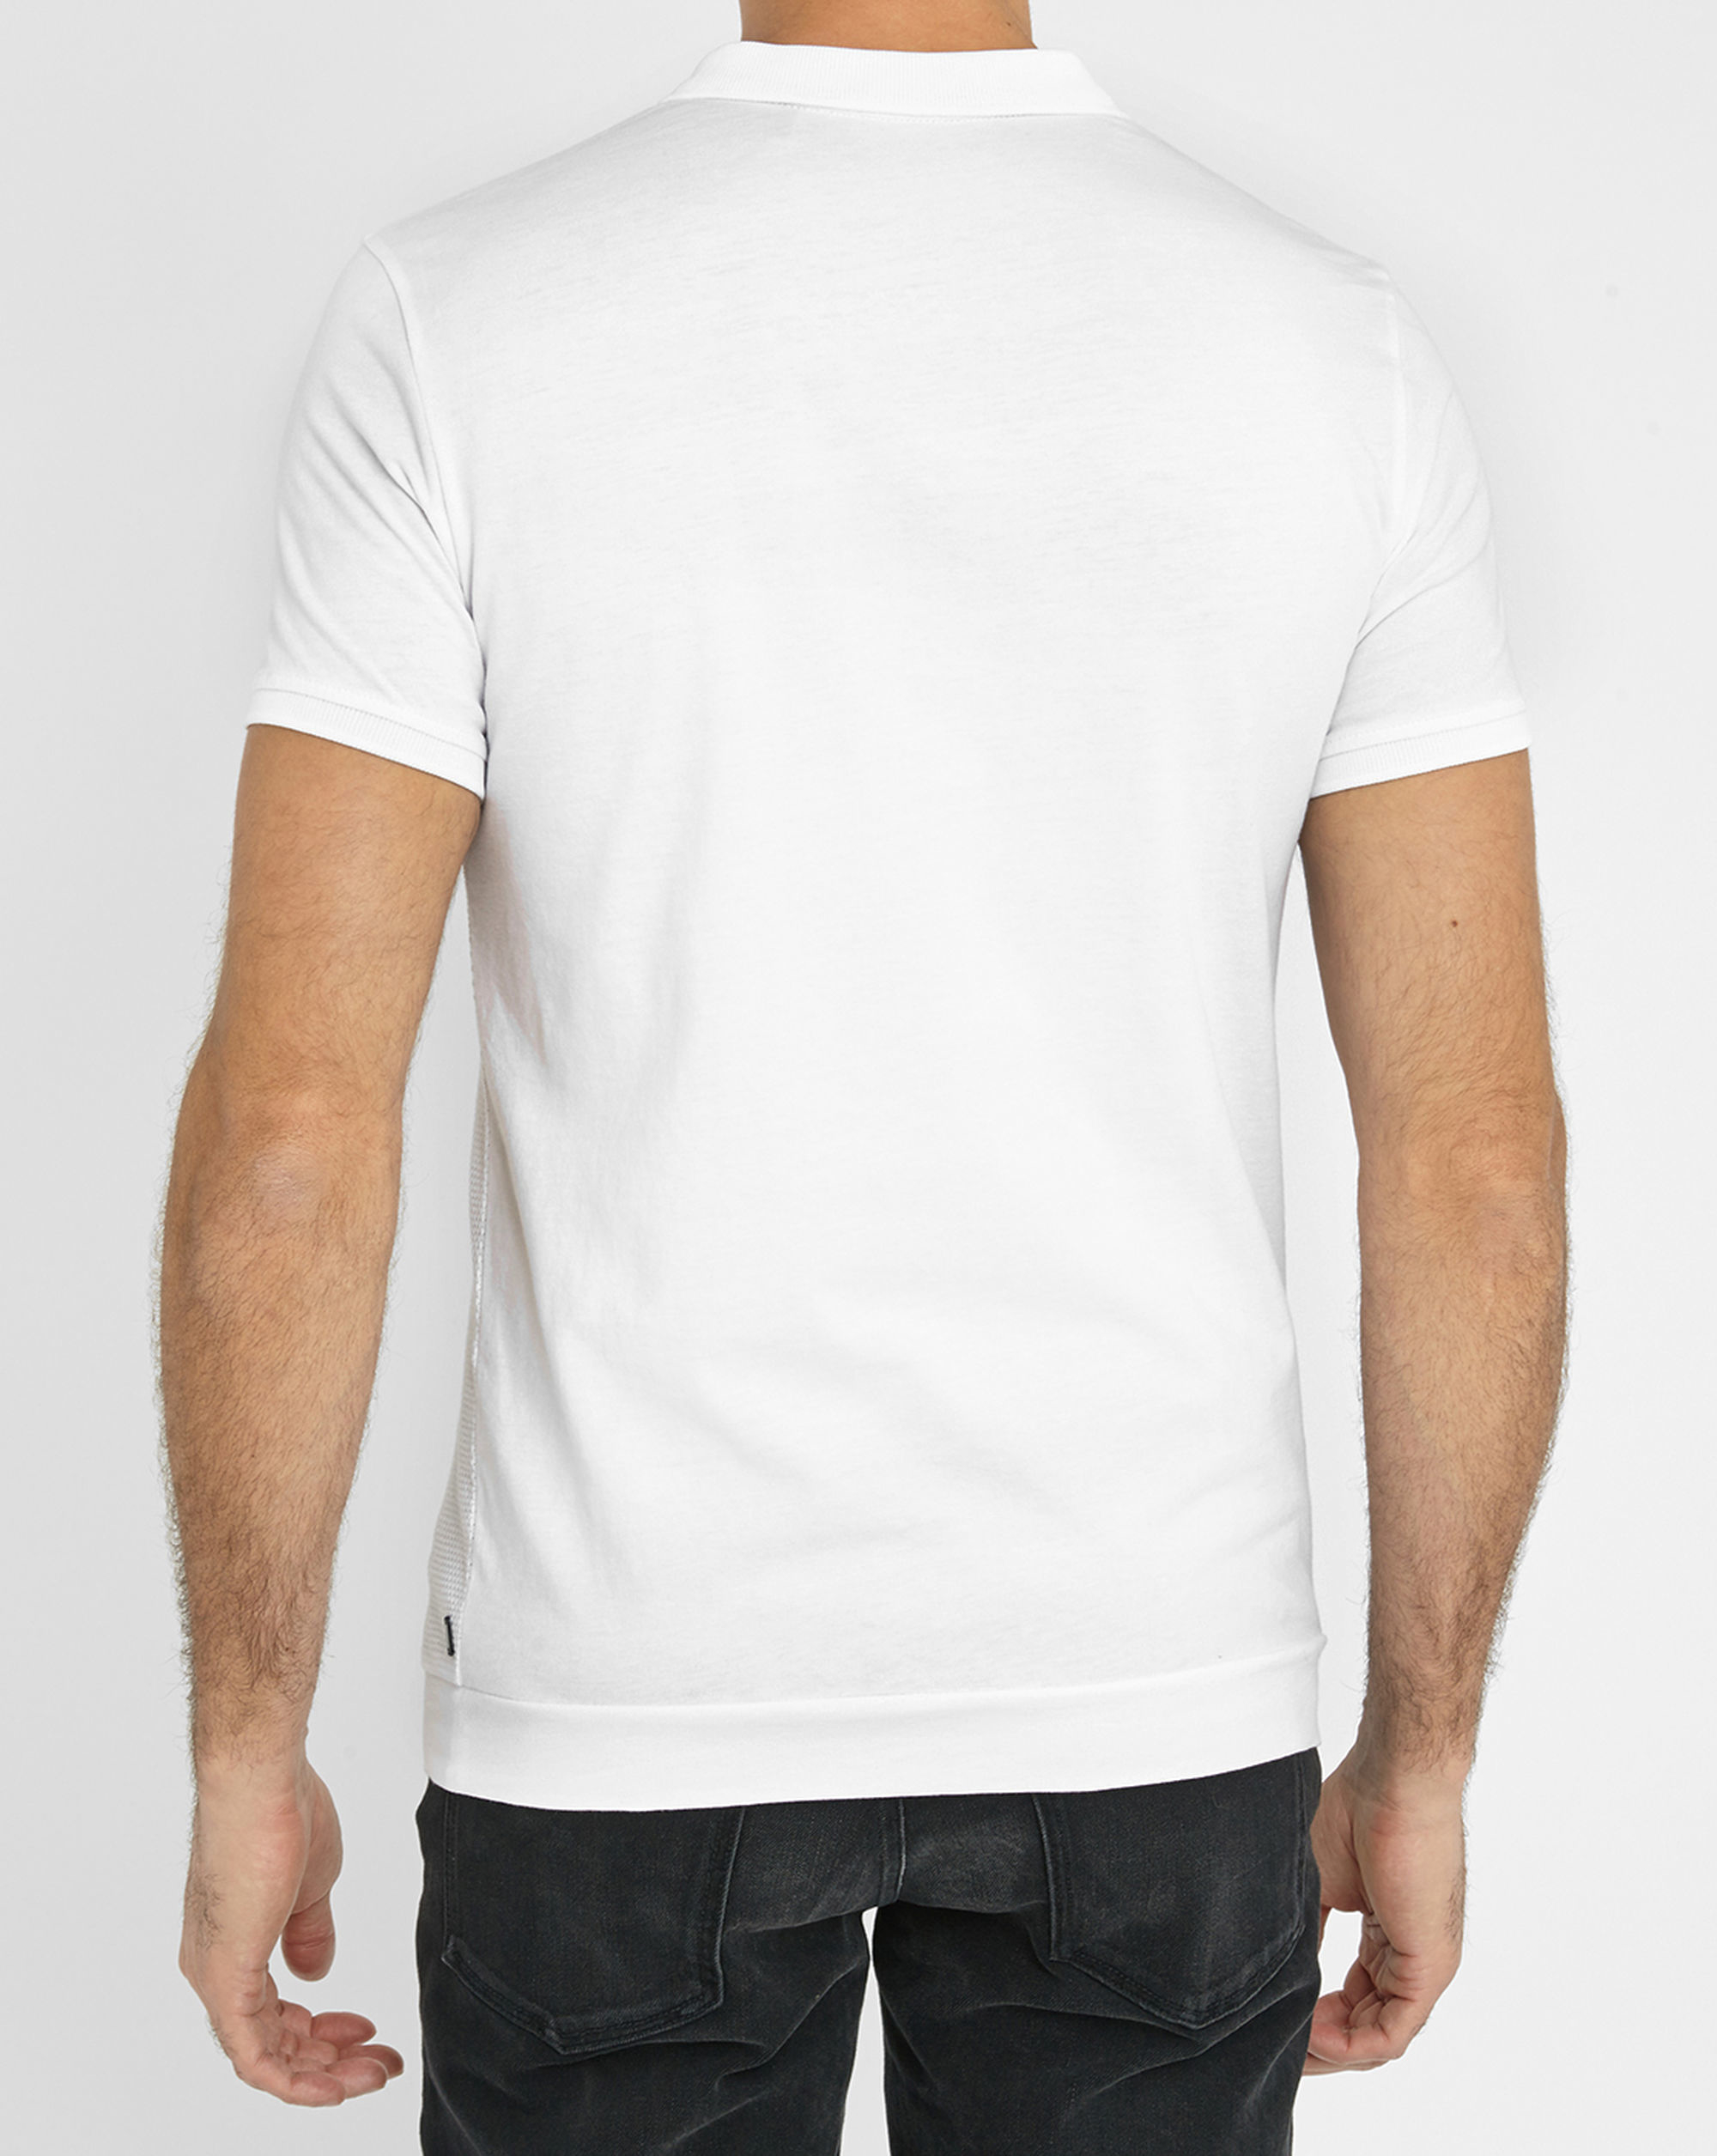 ikks white textured dual fabric polo shirt in white for men lyst. Black Bedroom Furniture Sets. Home Design Ideas